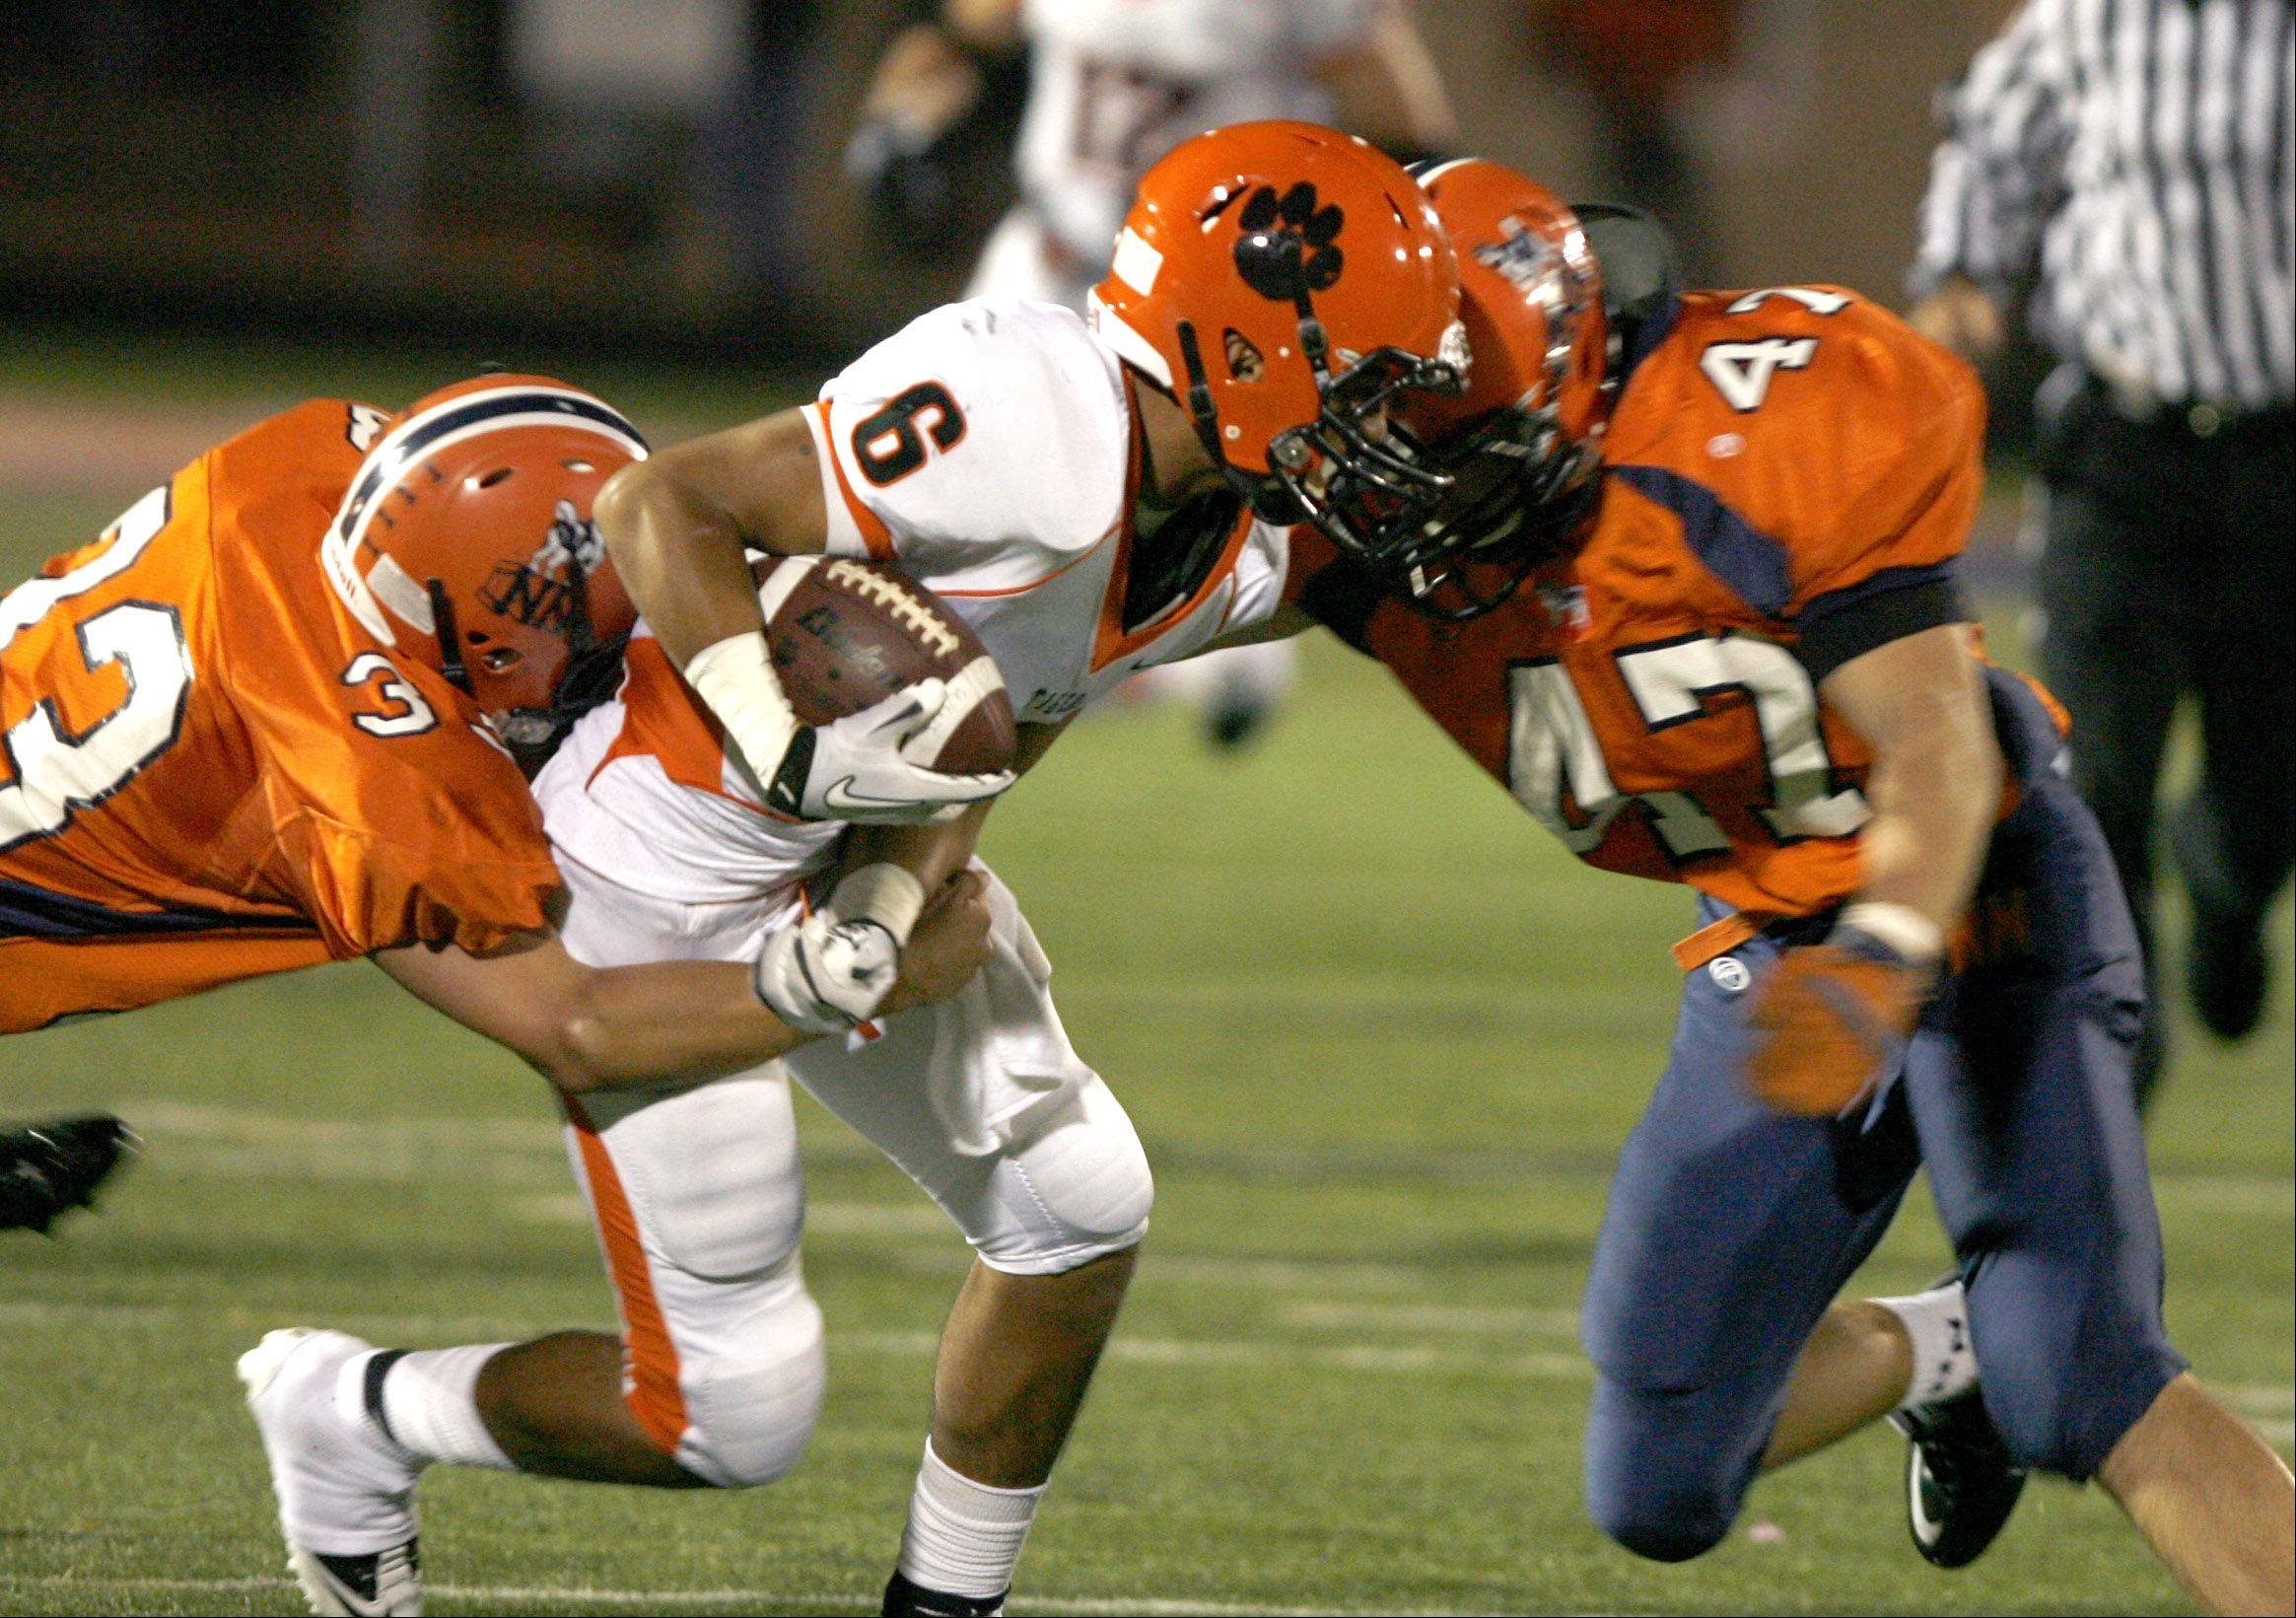 Naperville North High School's Kevin Walsh (33) and Tim Davis (47) tackle Wheaton Warrenville South High School's Brady Banda (6).